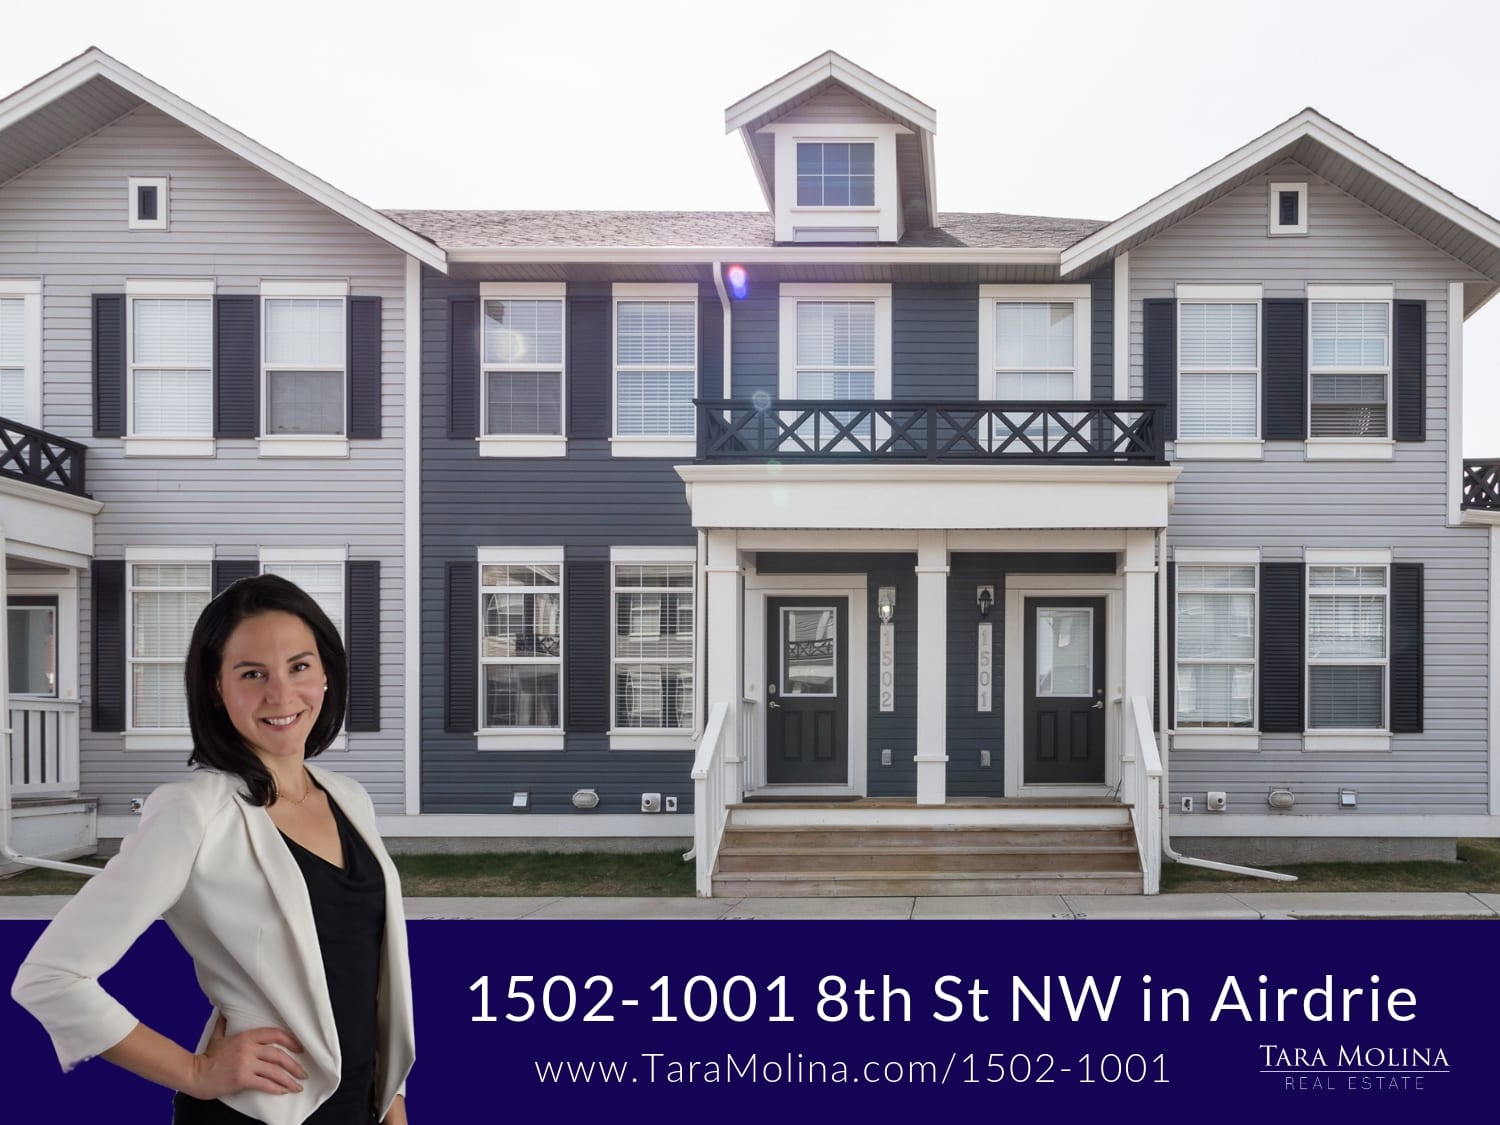 1502-1001 8th St NW in Airdrie